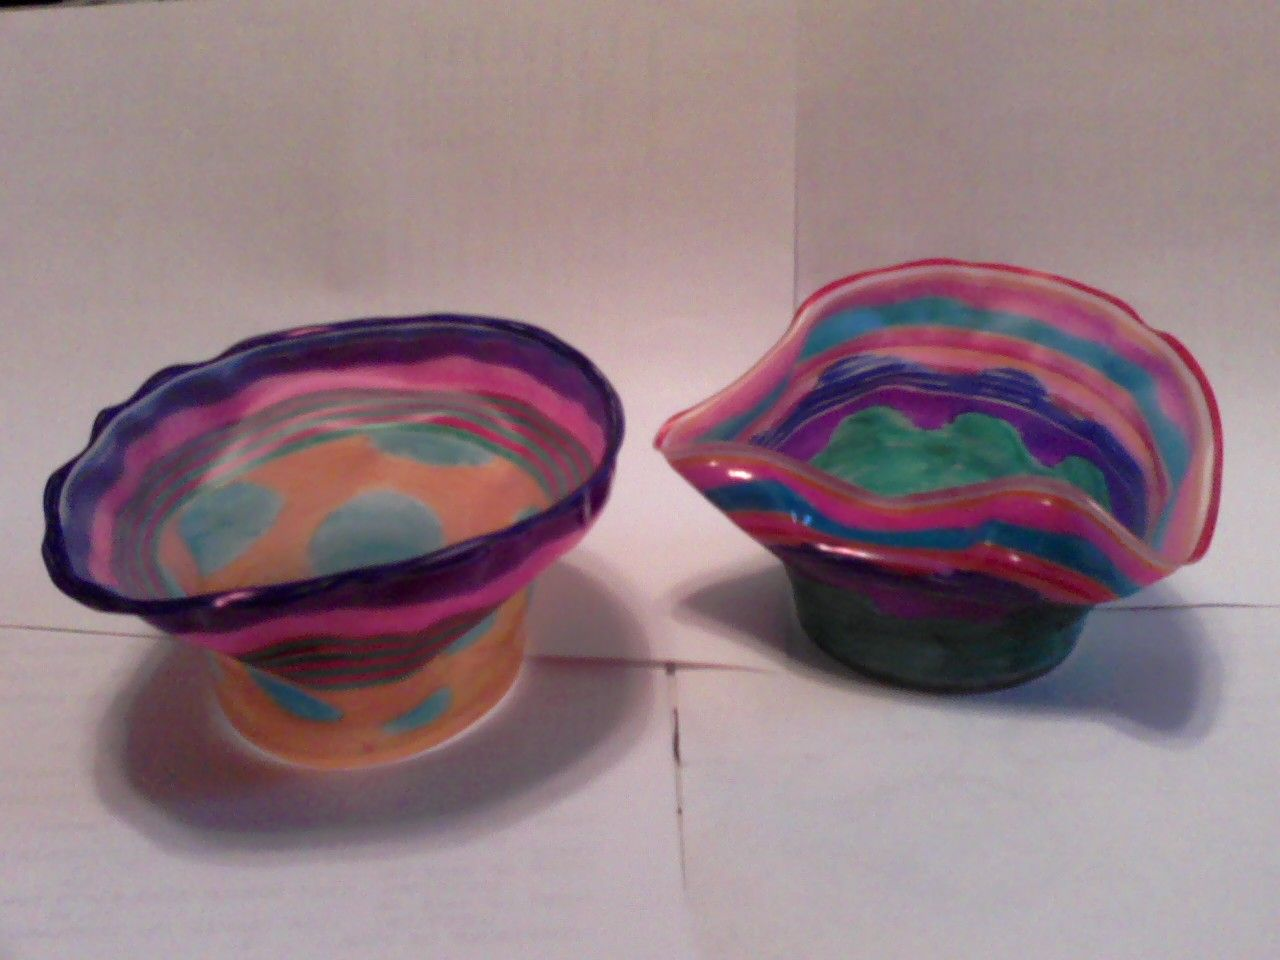 Decorating Plastic Tumblers Chihuly Blown Glass Bowls We Decorated Clear Plastic Cups And